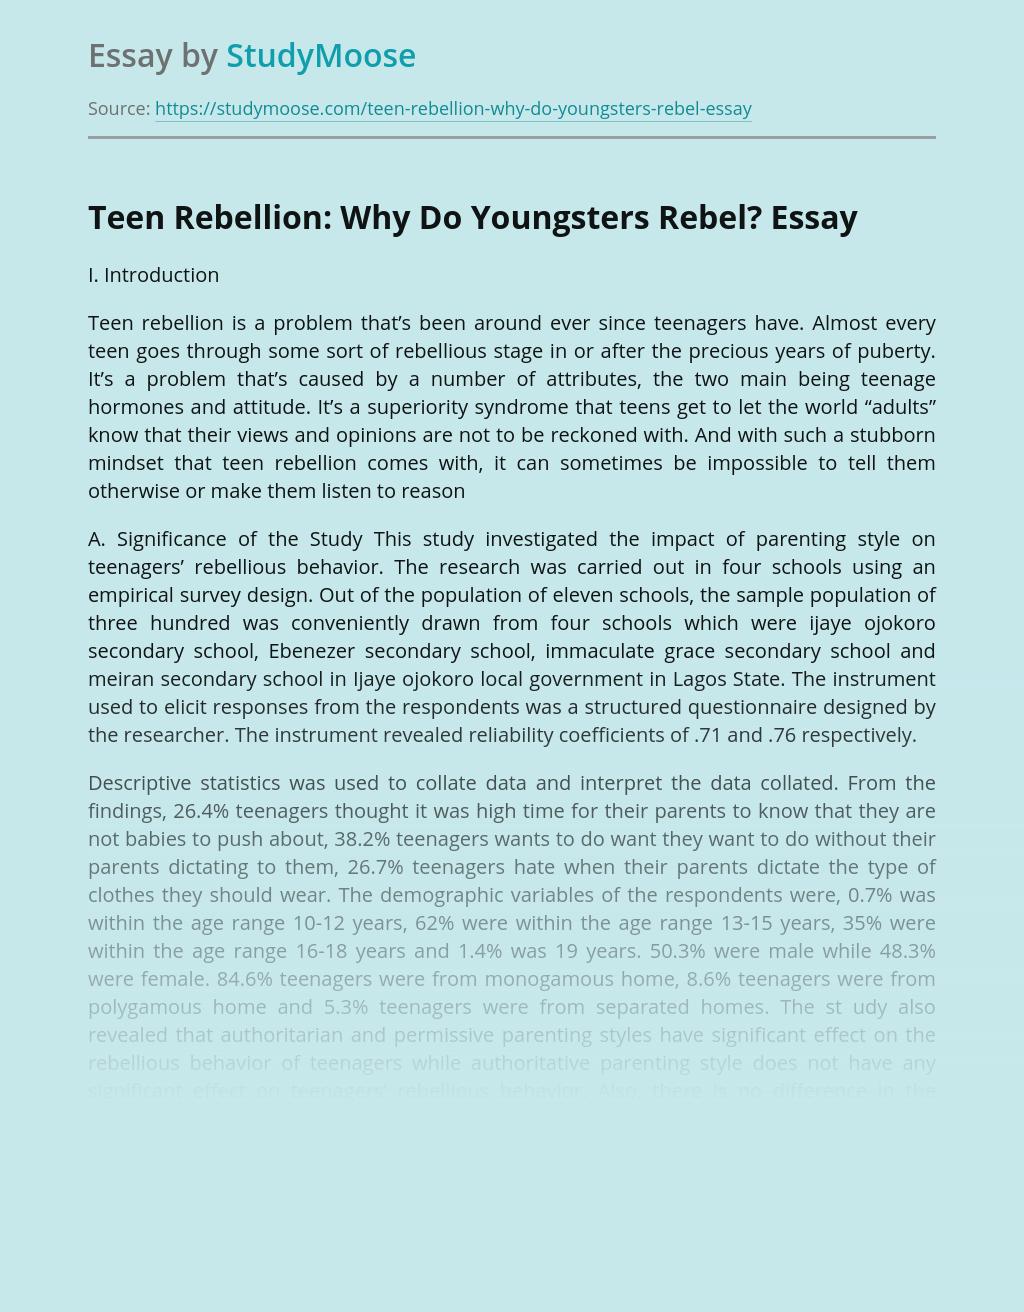 Analysis of Youngsters' Behavior and Rebellion